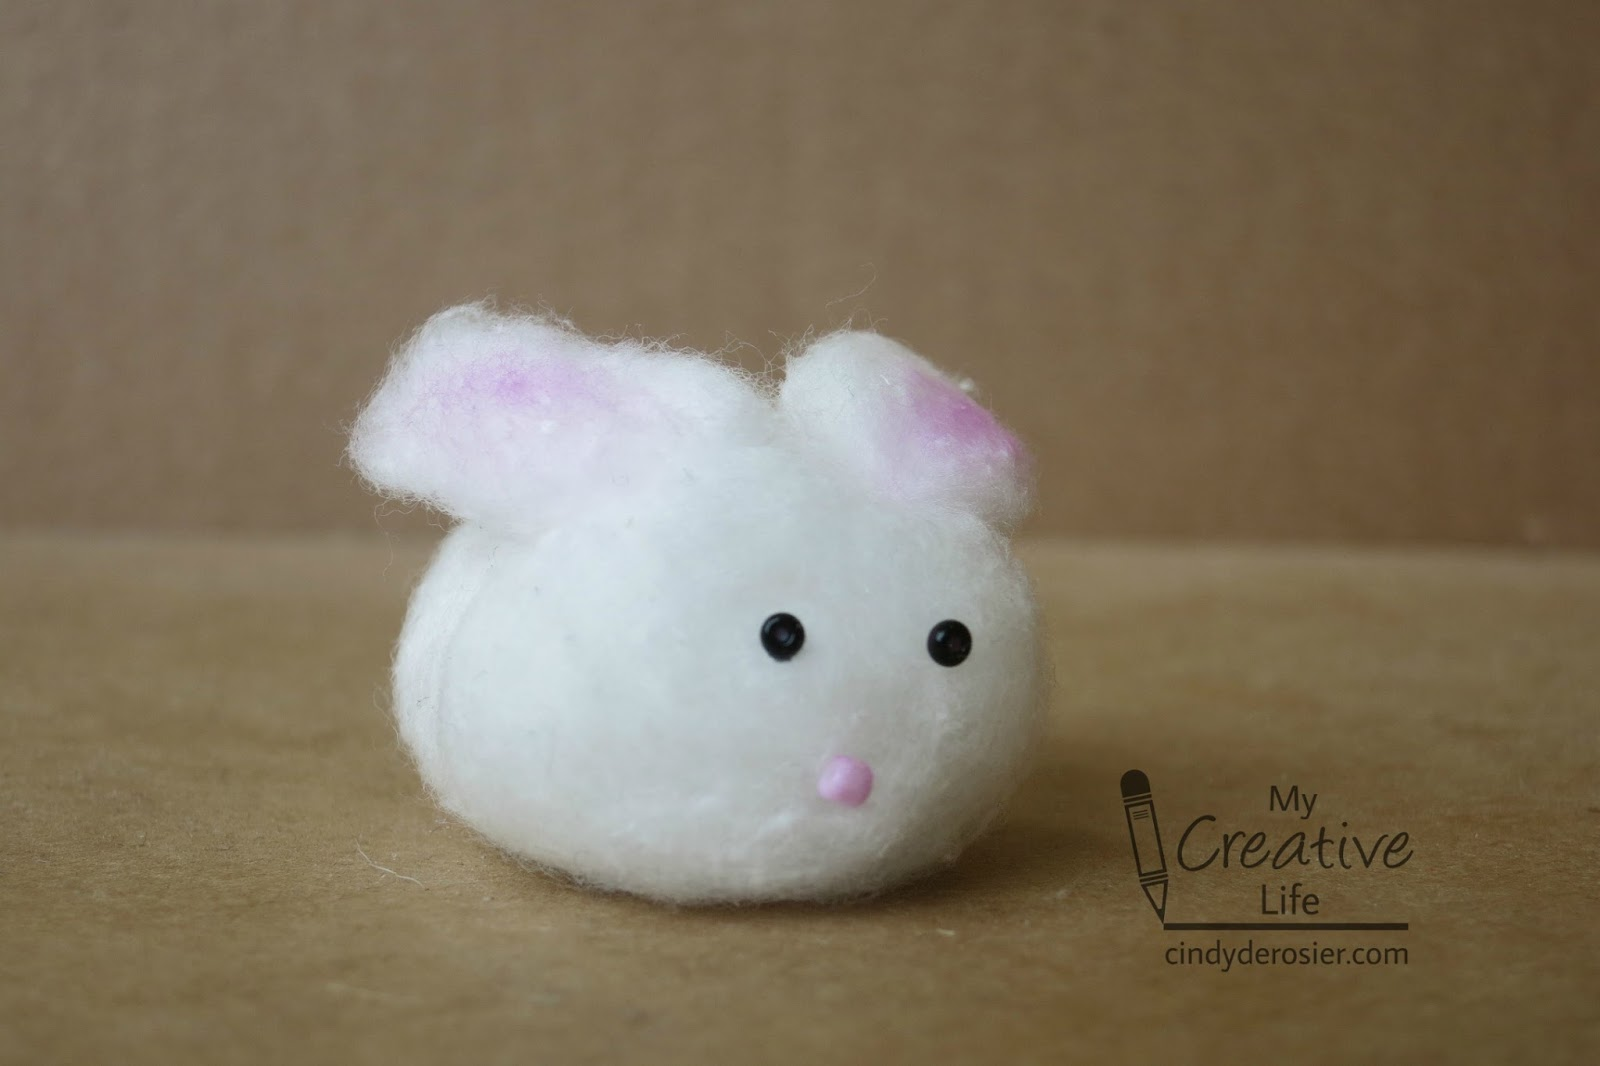 Cindy Derosier My Creative Life Bunny Week Day 2 Cotton Ball And The Language Of Lagomorphs